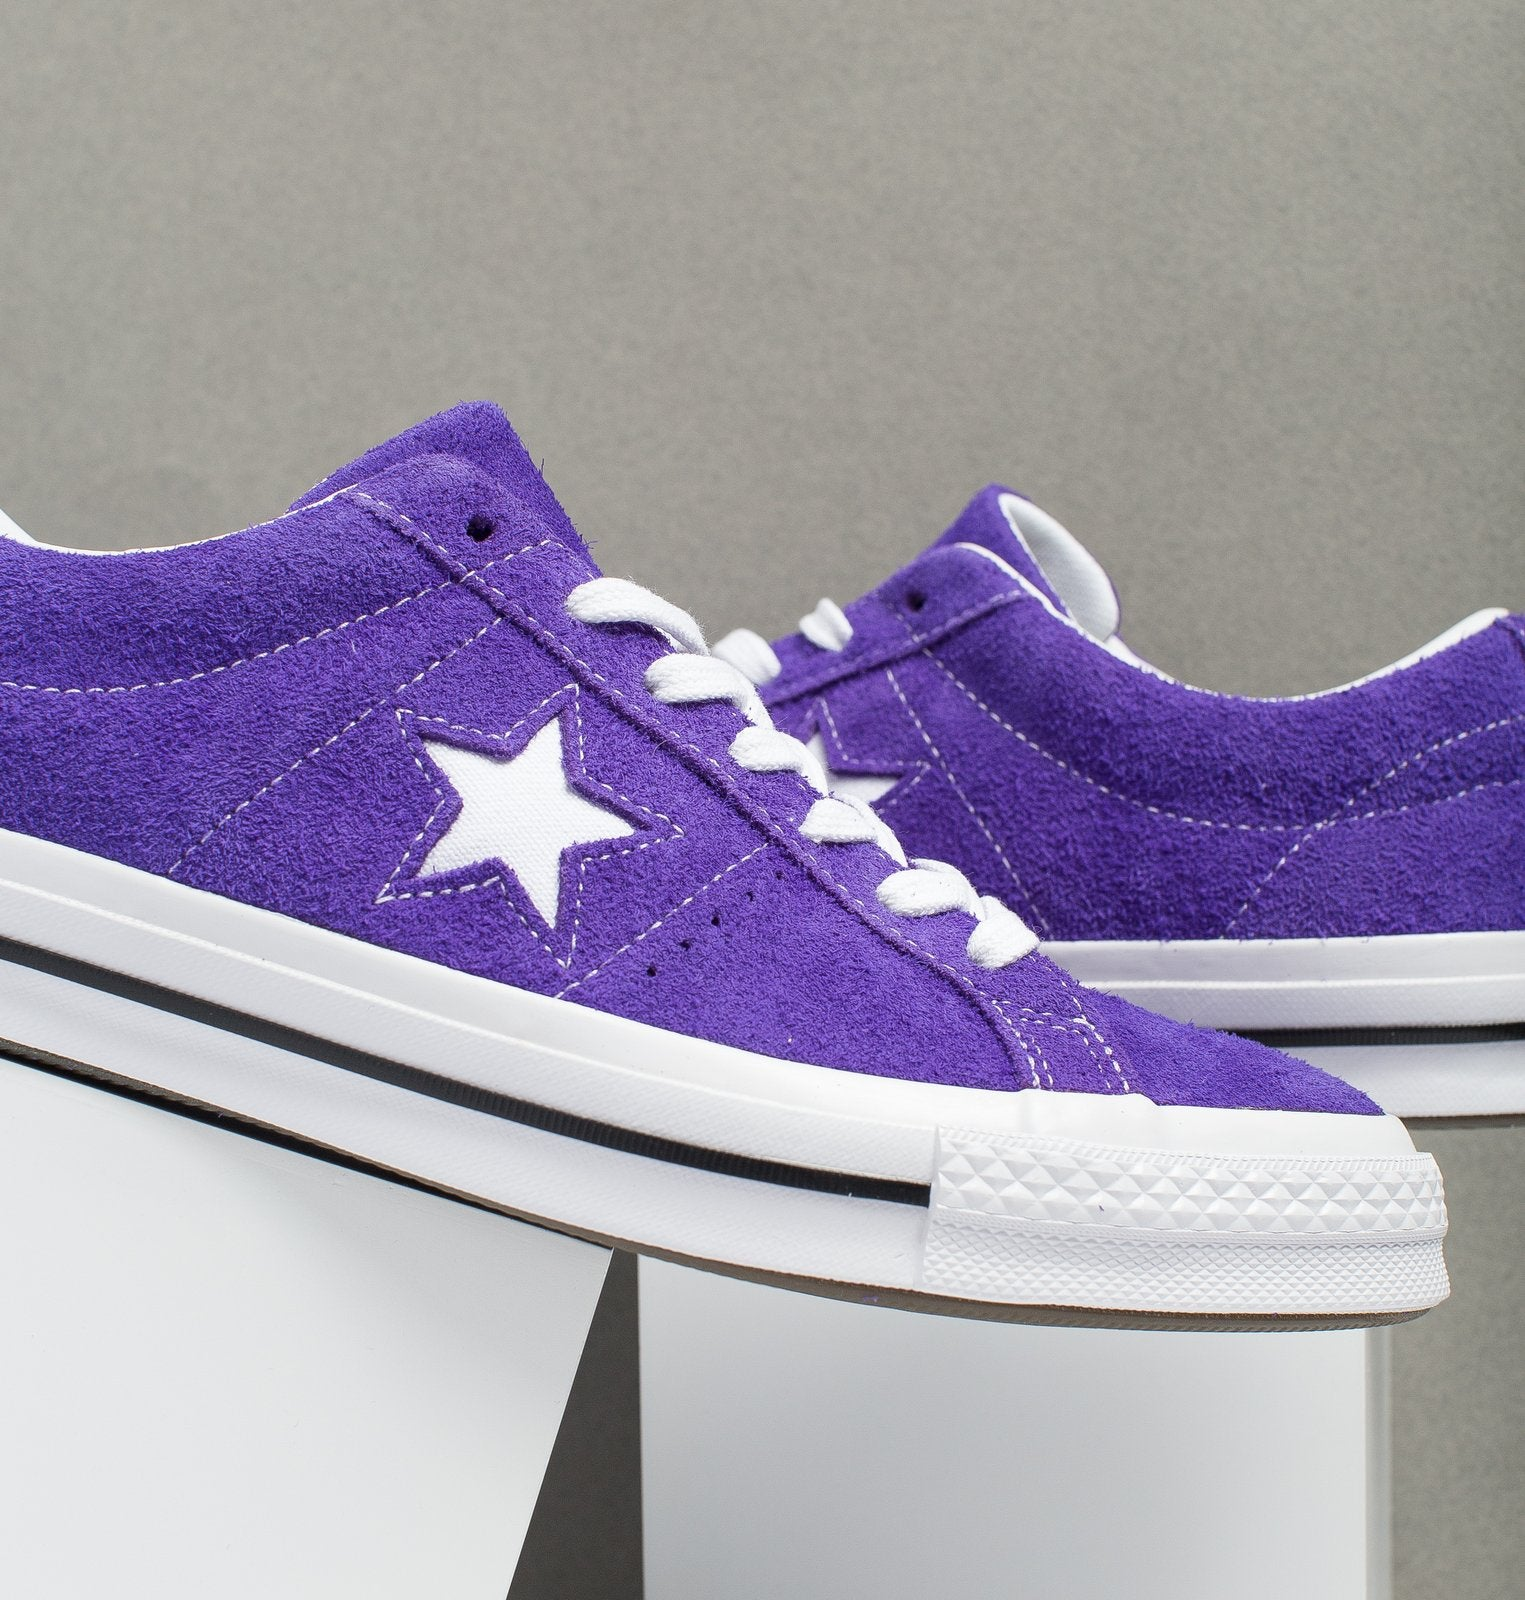 CONVERSE ONE STAR OX - Oneness Boutique